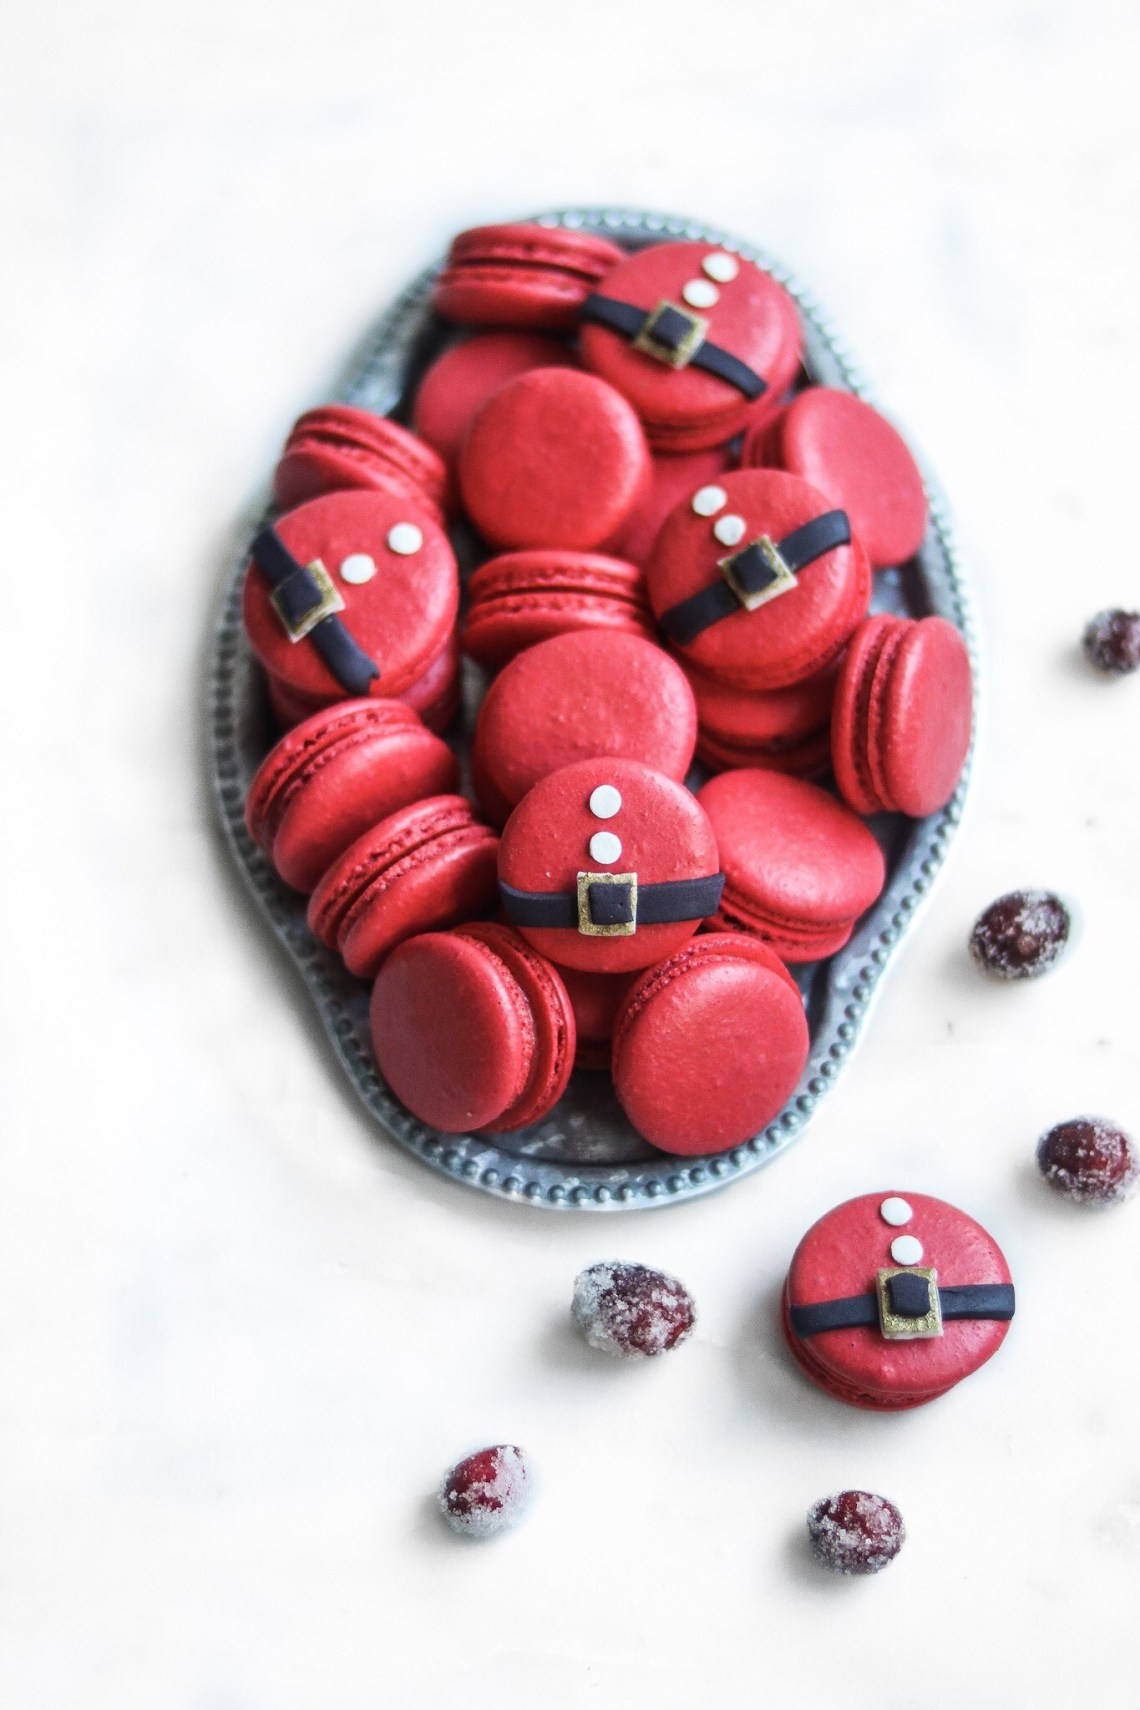 22 Days of Christmas cookies with santa macarons